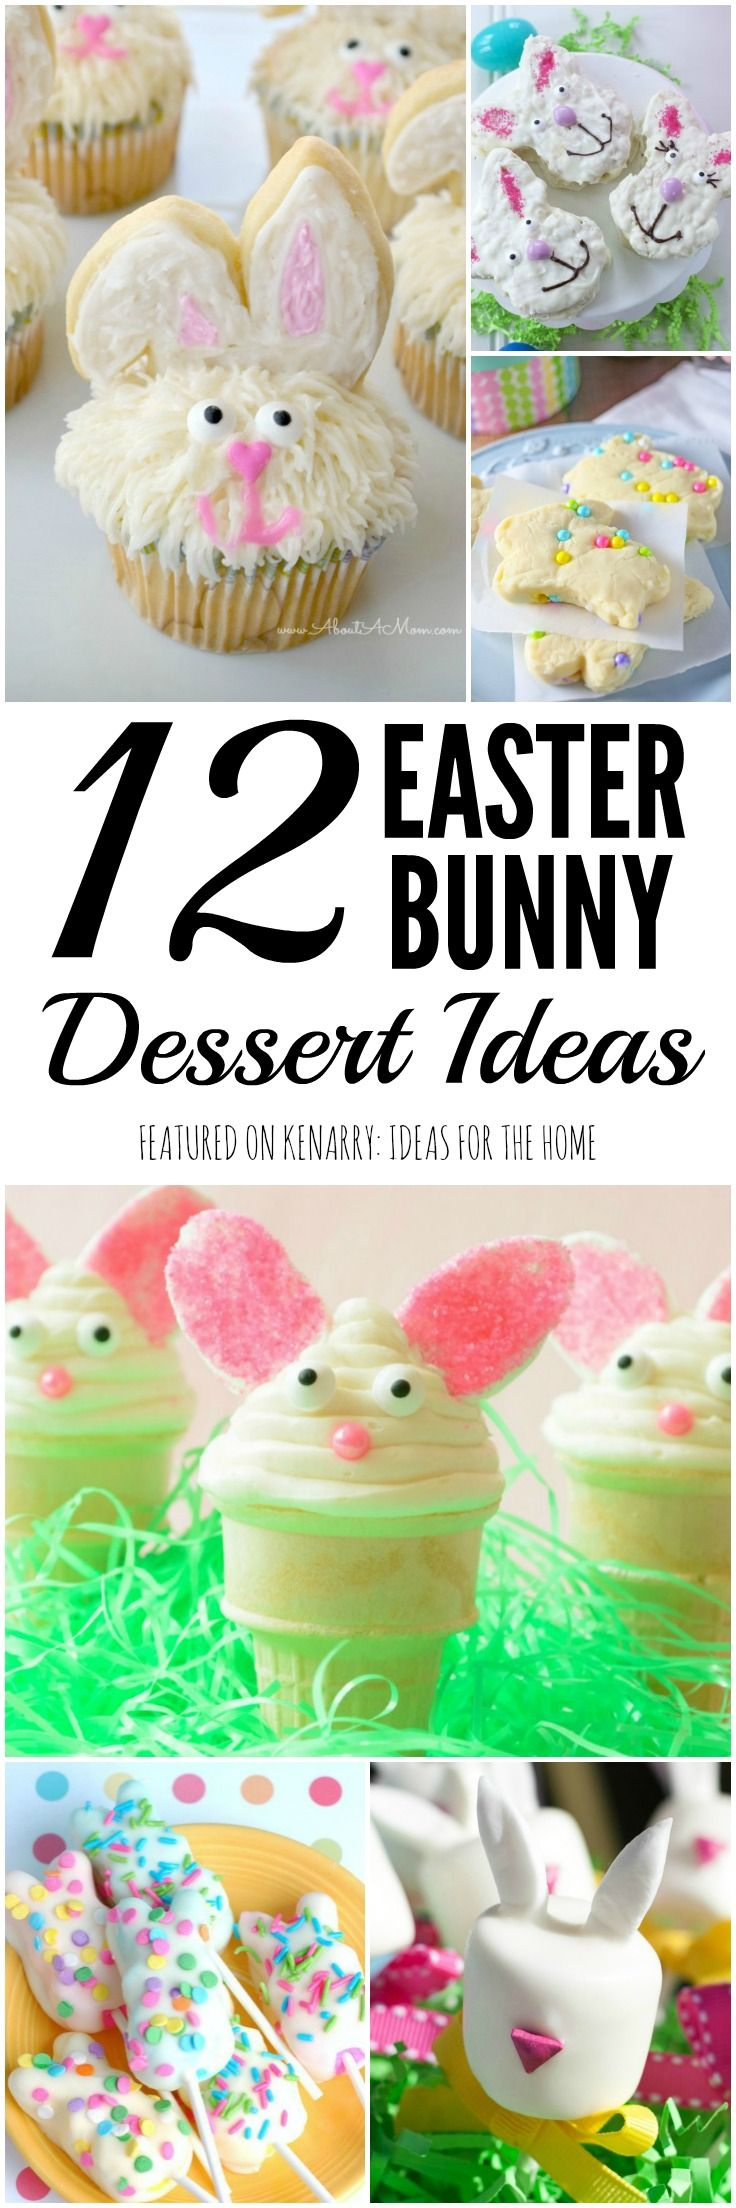 Easter Bunny Recipes 12 Rabbit Shaped Treat Ideas  Other. Century Home Bathroom Ideas. Small Closet Ideas Ikea. Bulletin Board Ideas Labor Day Theme. Decorating Ideas For Gray Kitchen. Garden Ideas With Fences. Gift Ideas Website. Food Ideas Pasta. Living Room Ideas Dark Furniture